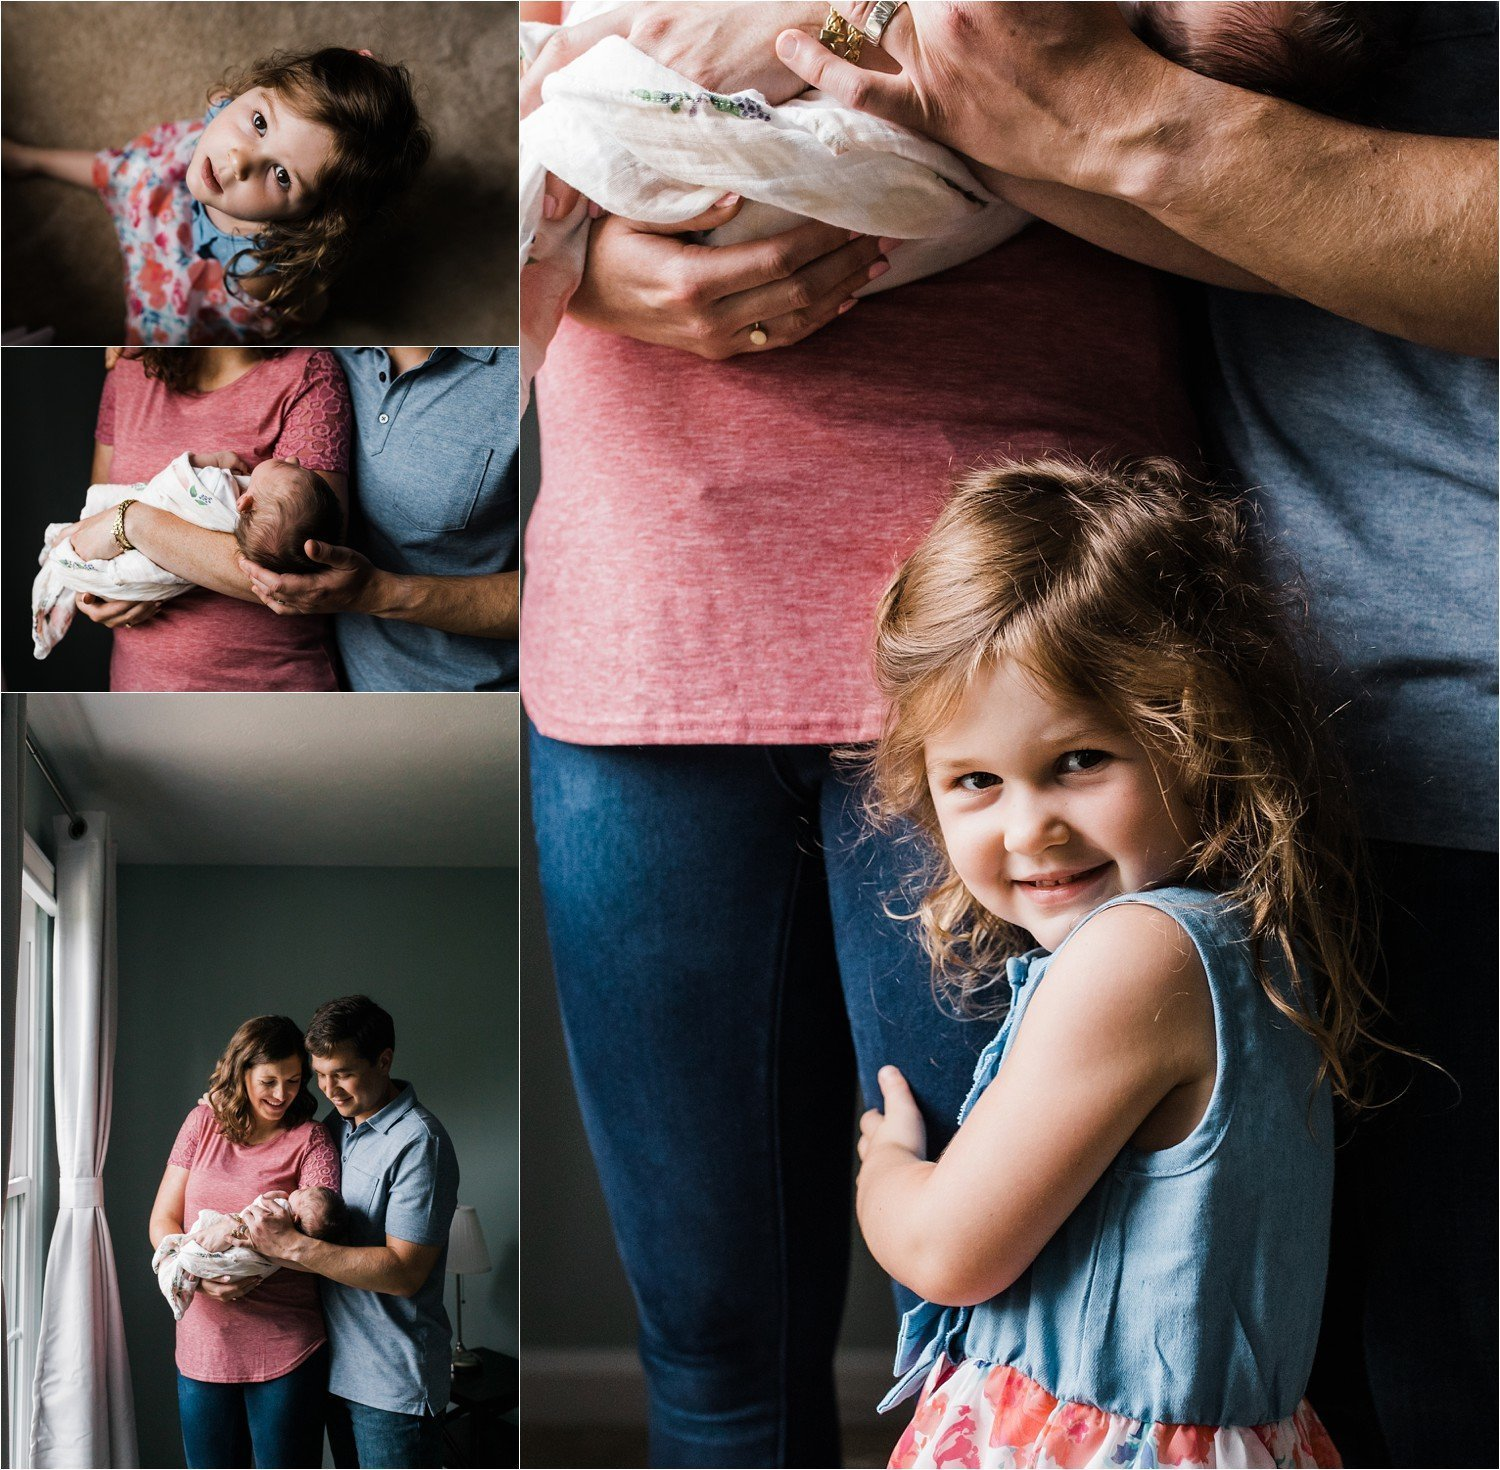 candid photos of a family being together with newborn baby